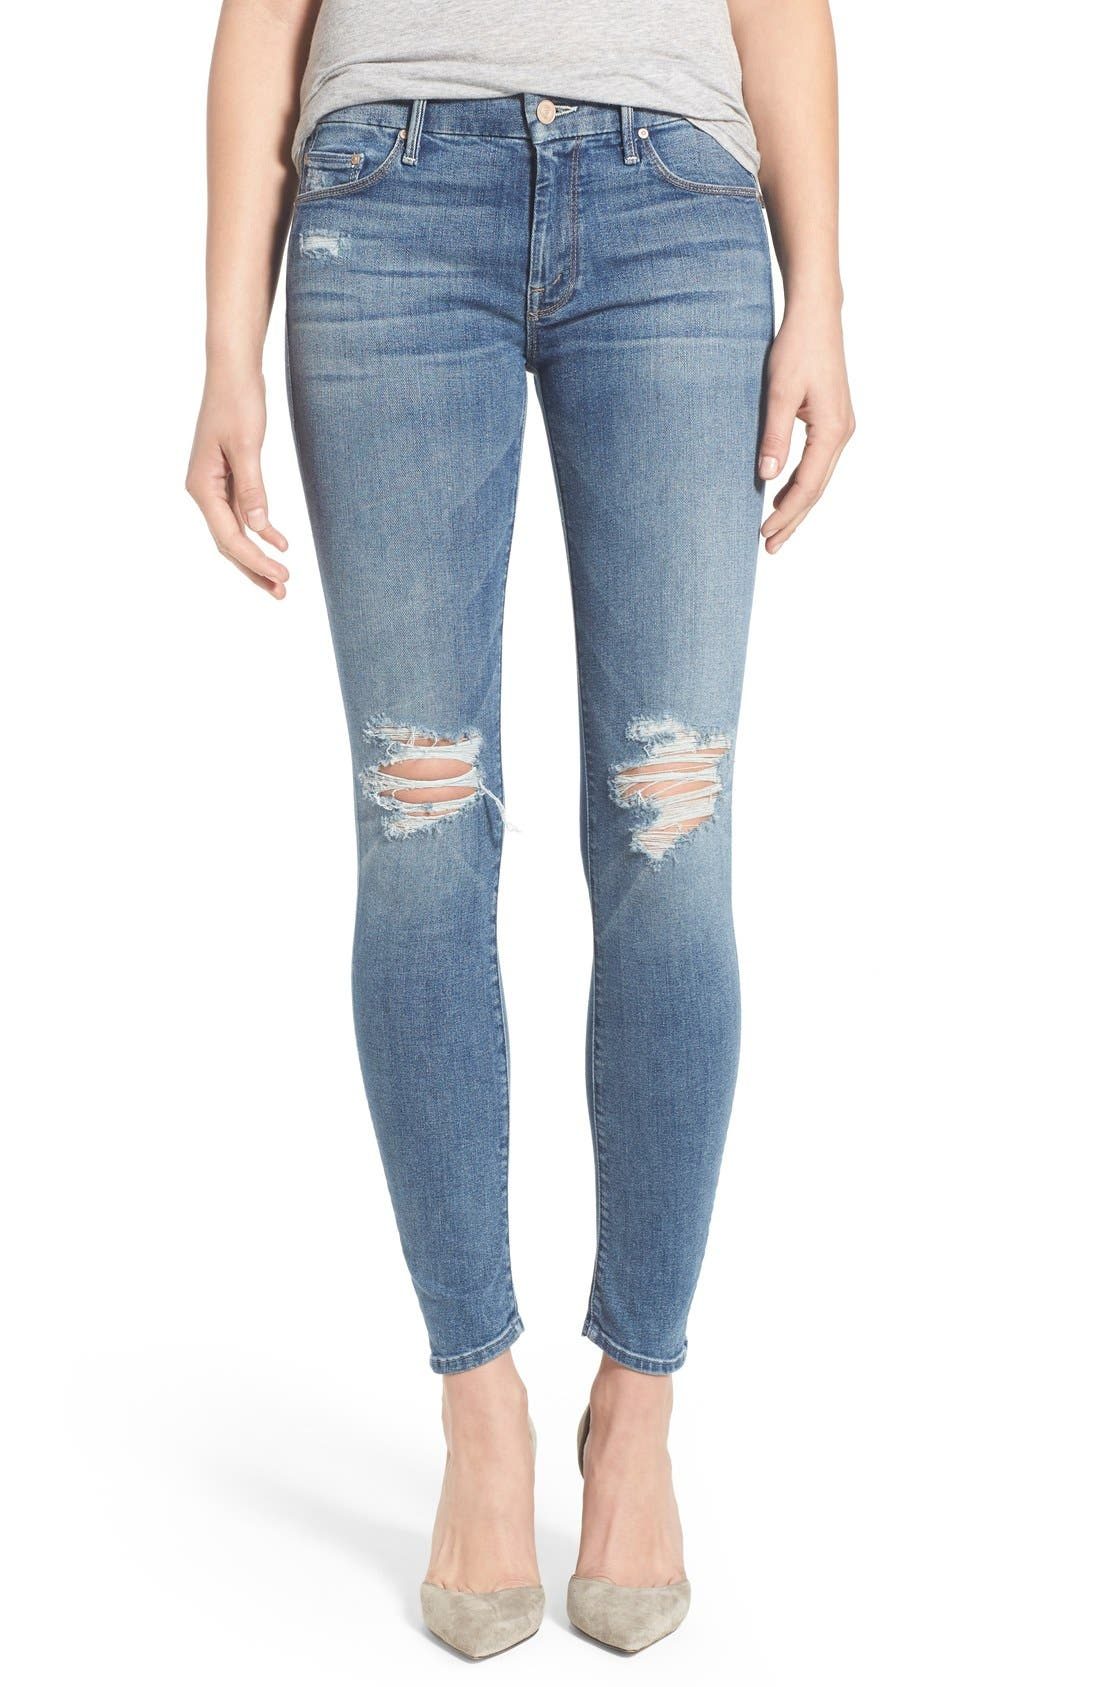 Alternate Image 1 Selected - MOTHER 'The Looker' Distressed Skinny Jeans (Cowboy)